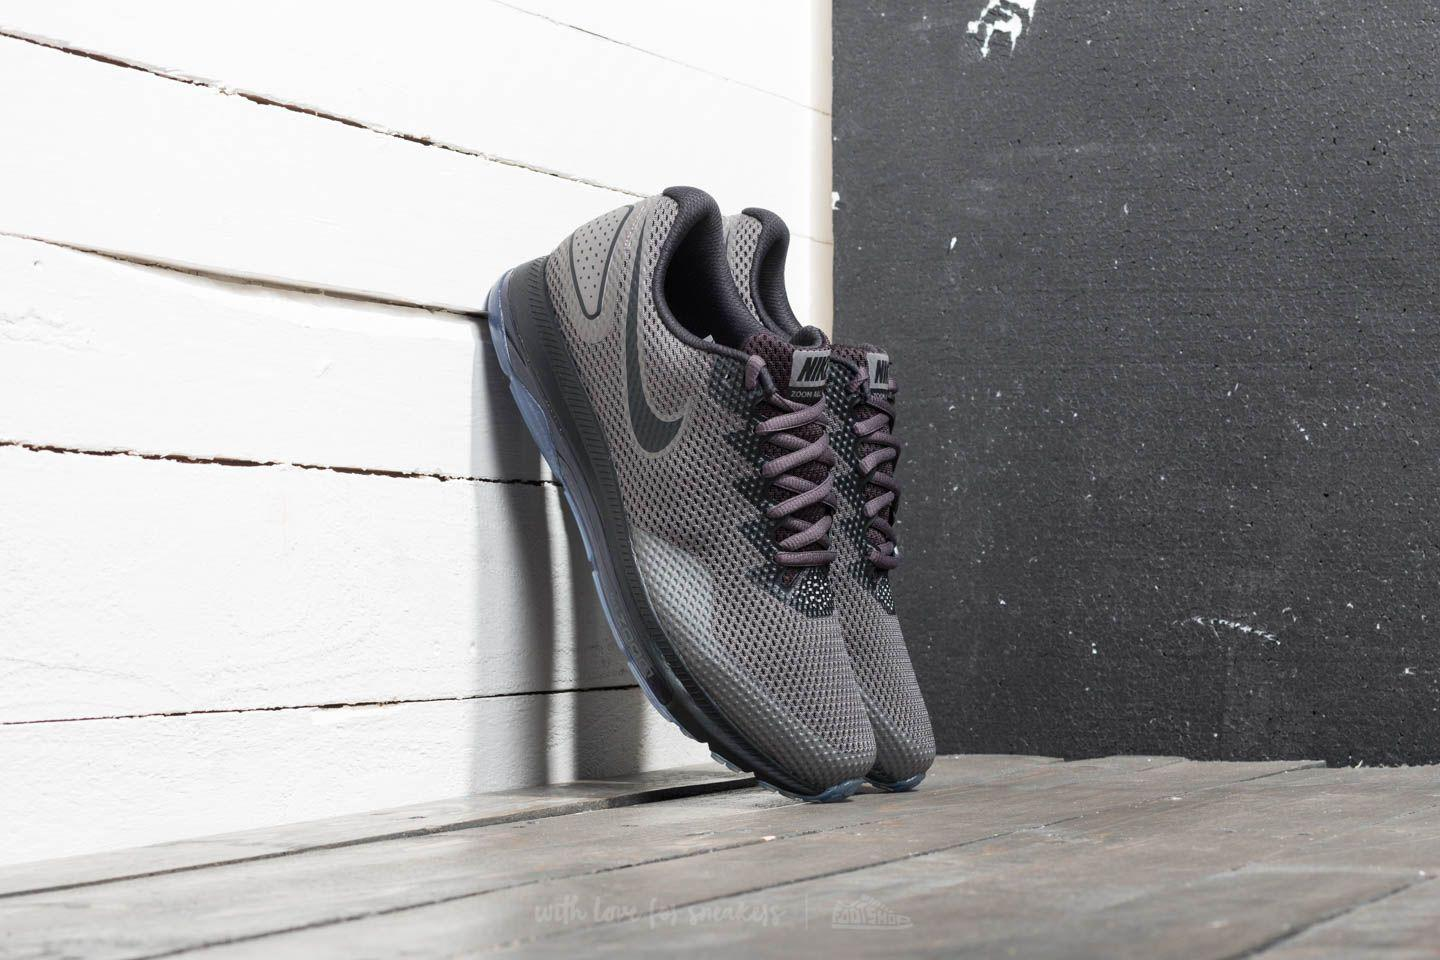 b60500c17227 Lyst - Nike Zoom All Out Low 2 Midnight Fog  Black-obsidian in Black ...